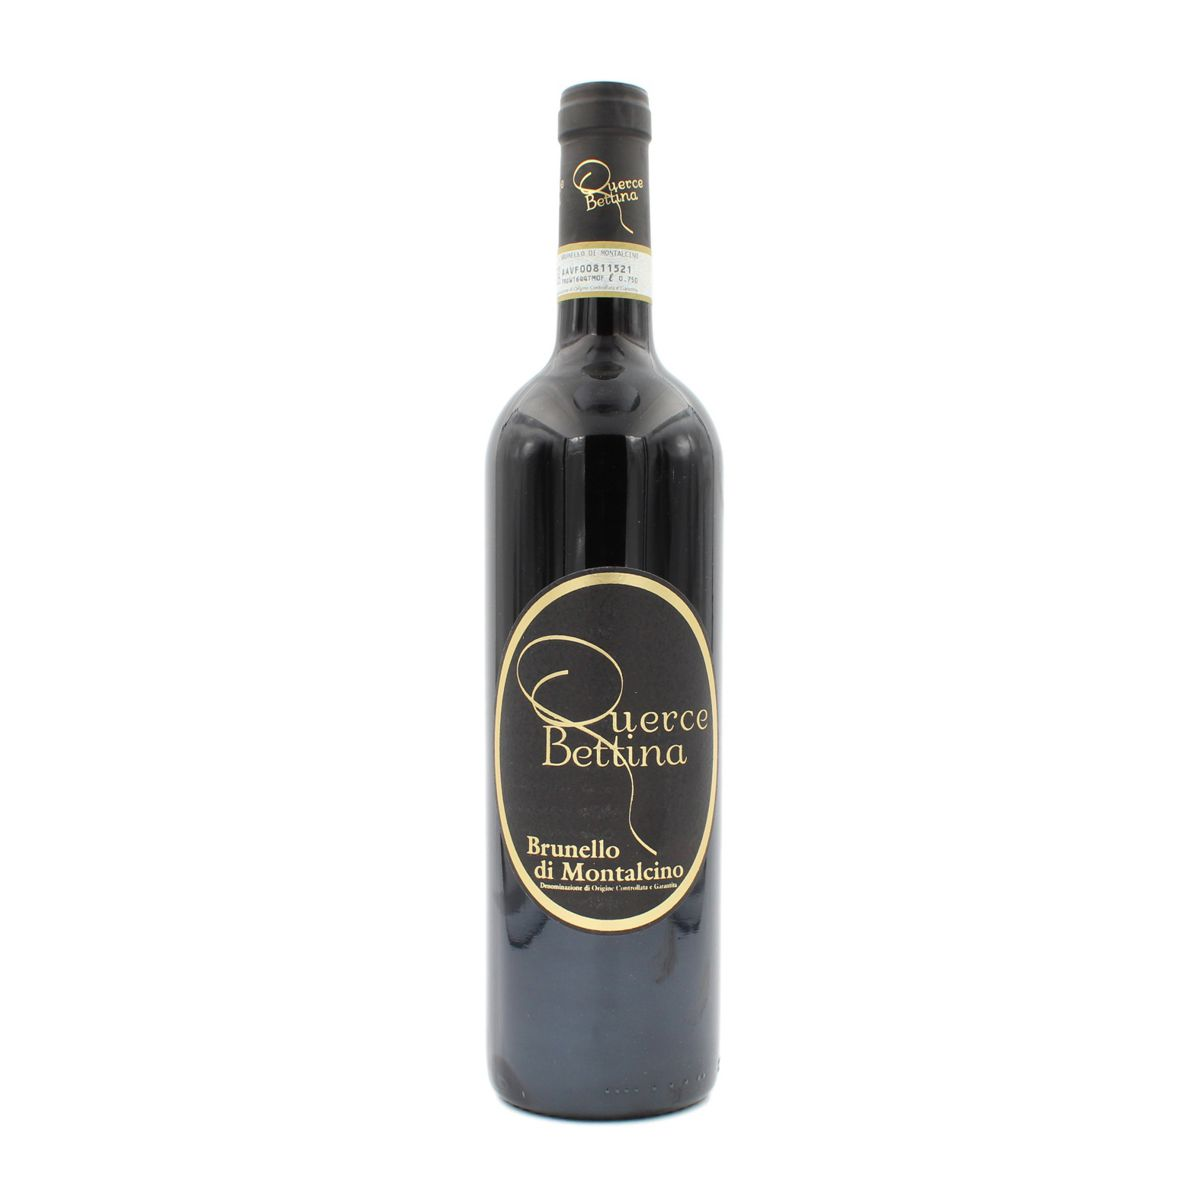 Brunello di Montalcino 2013 Querce Bettina